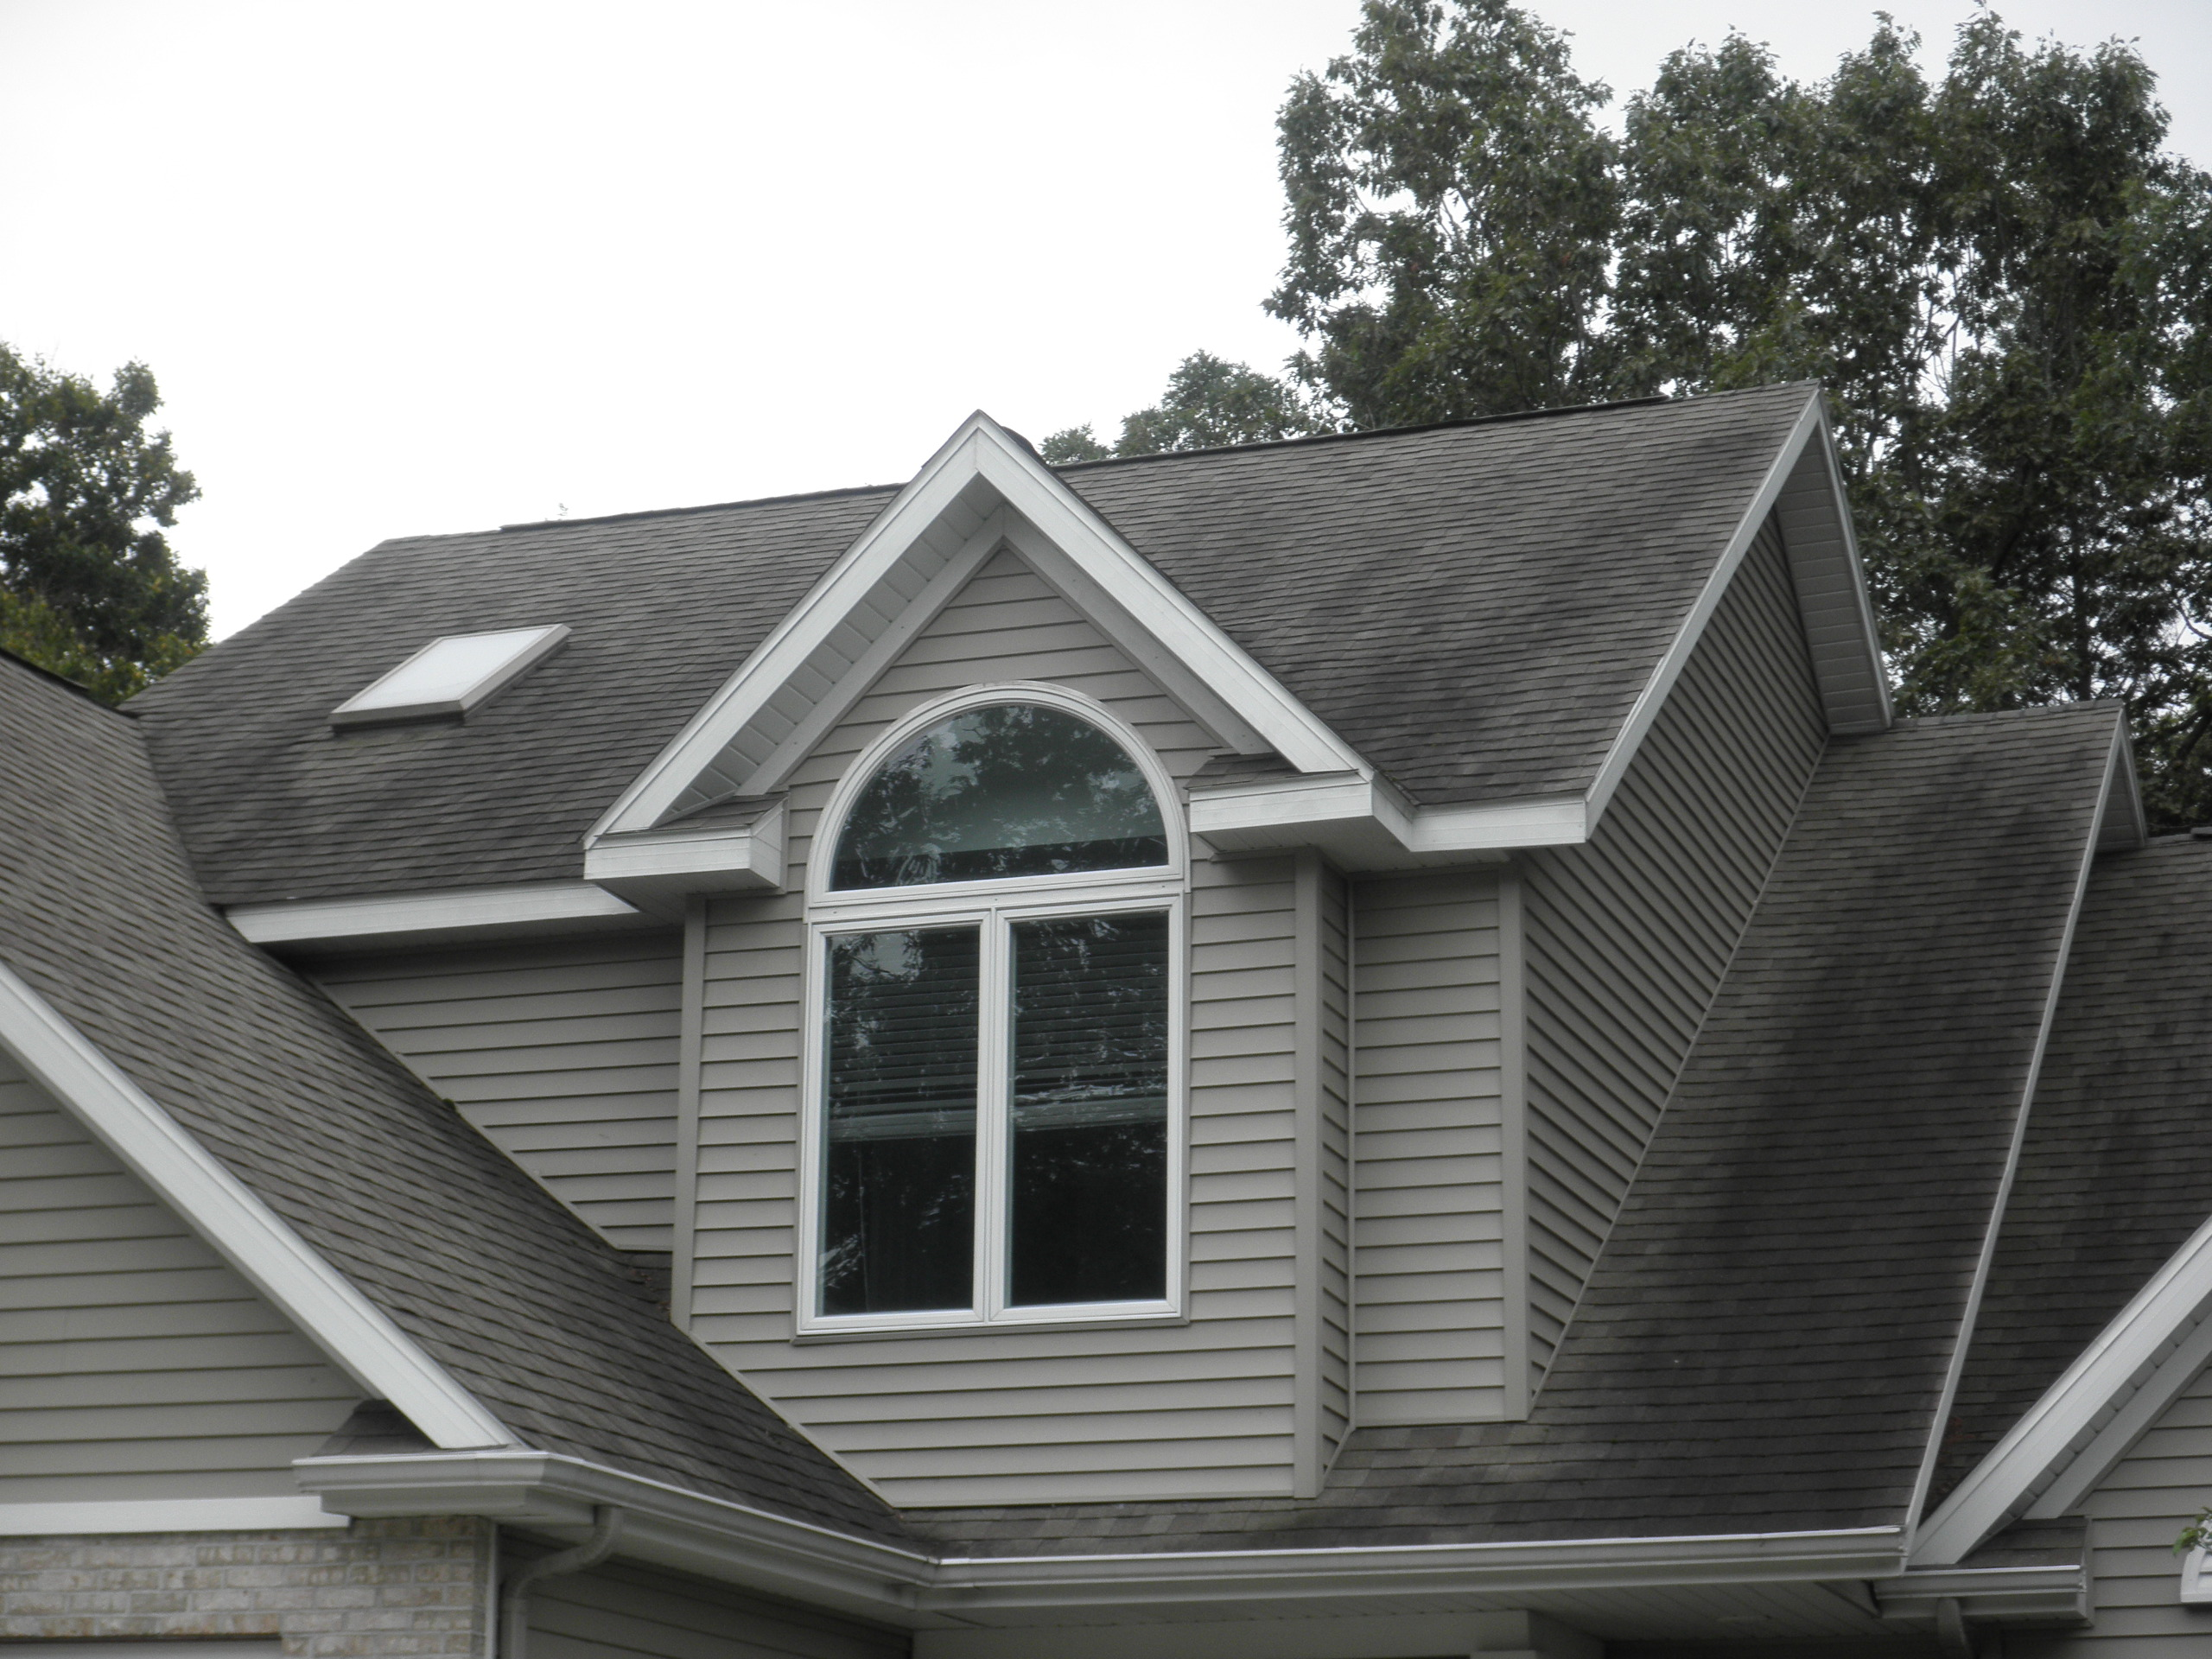 Roof Cleaner Residential And Commercial Exterior